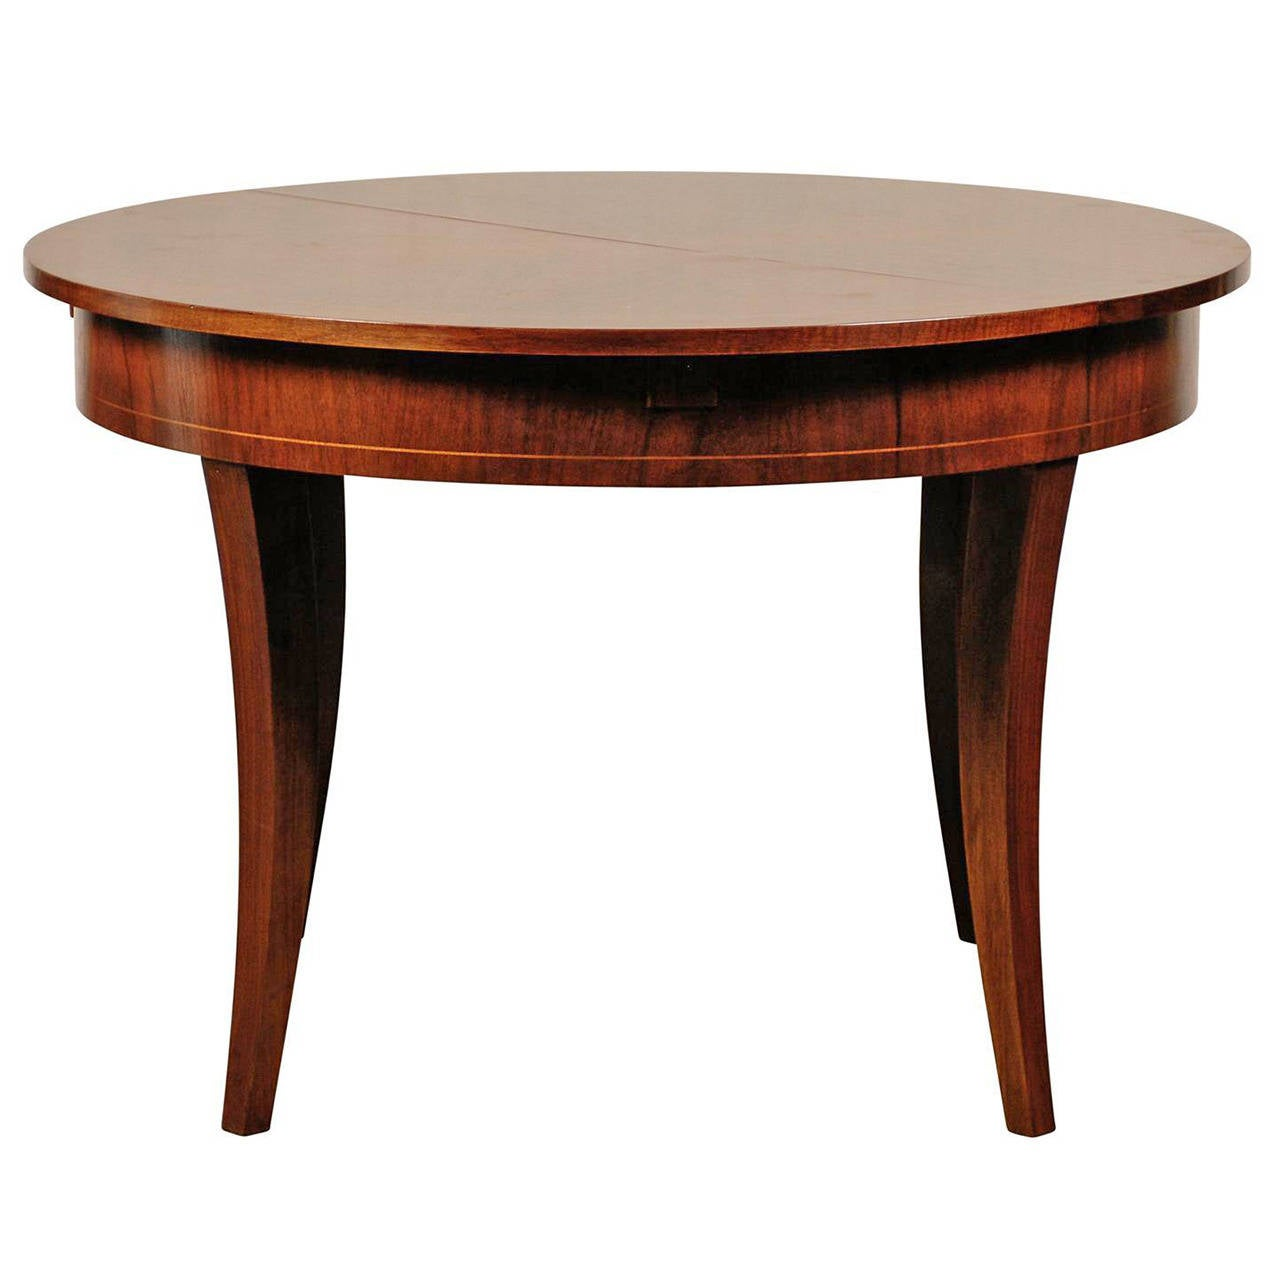 20th Century Austrian Style Round Walnut Extension Dining: table extenders dining room